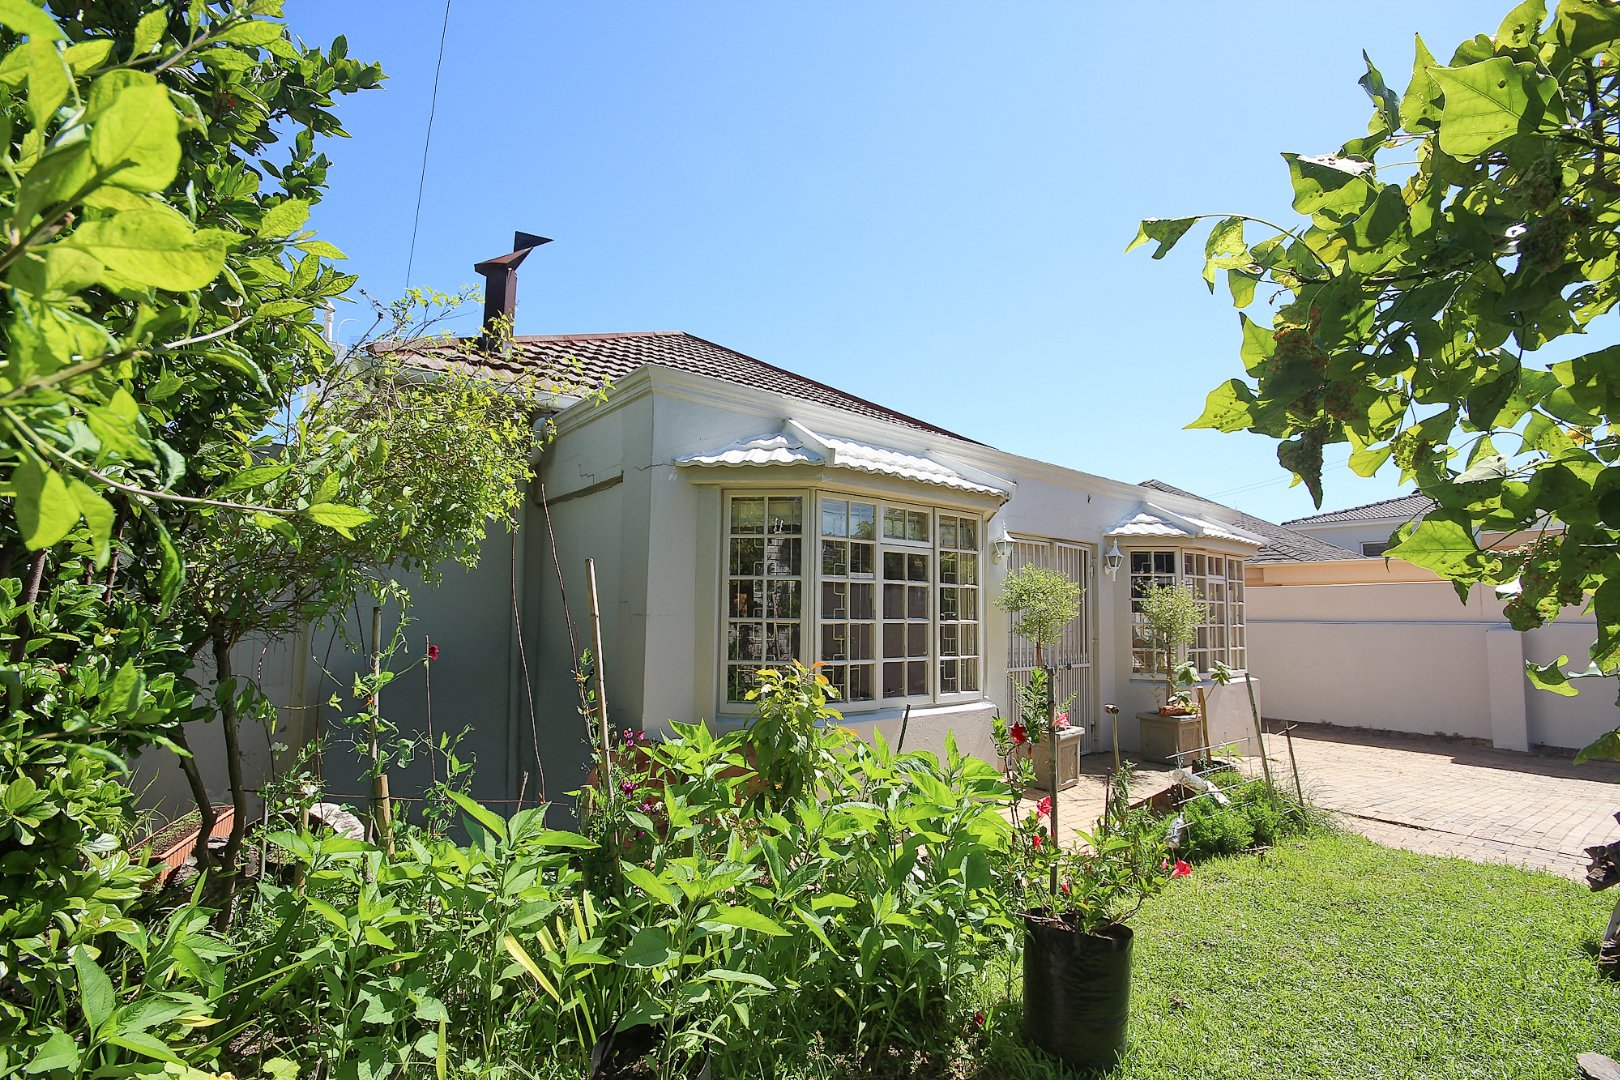 Cape Town, Claremont Upper Property  | Houses For Sale Claremont Upper, Claremont Upper, House 3 bedrooms property for sale Price:5,950,000